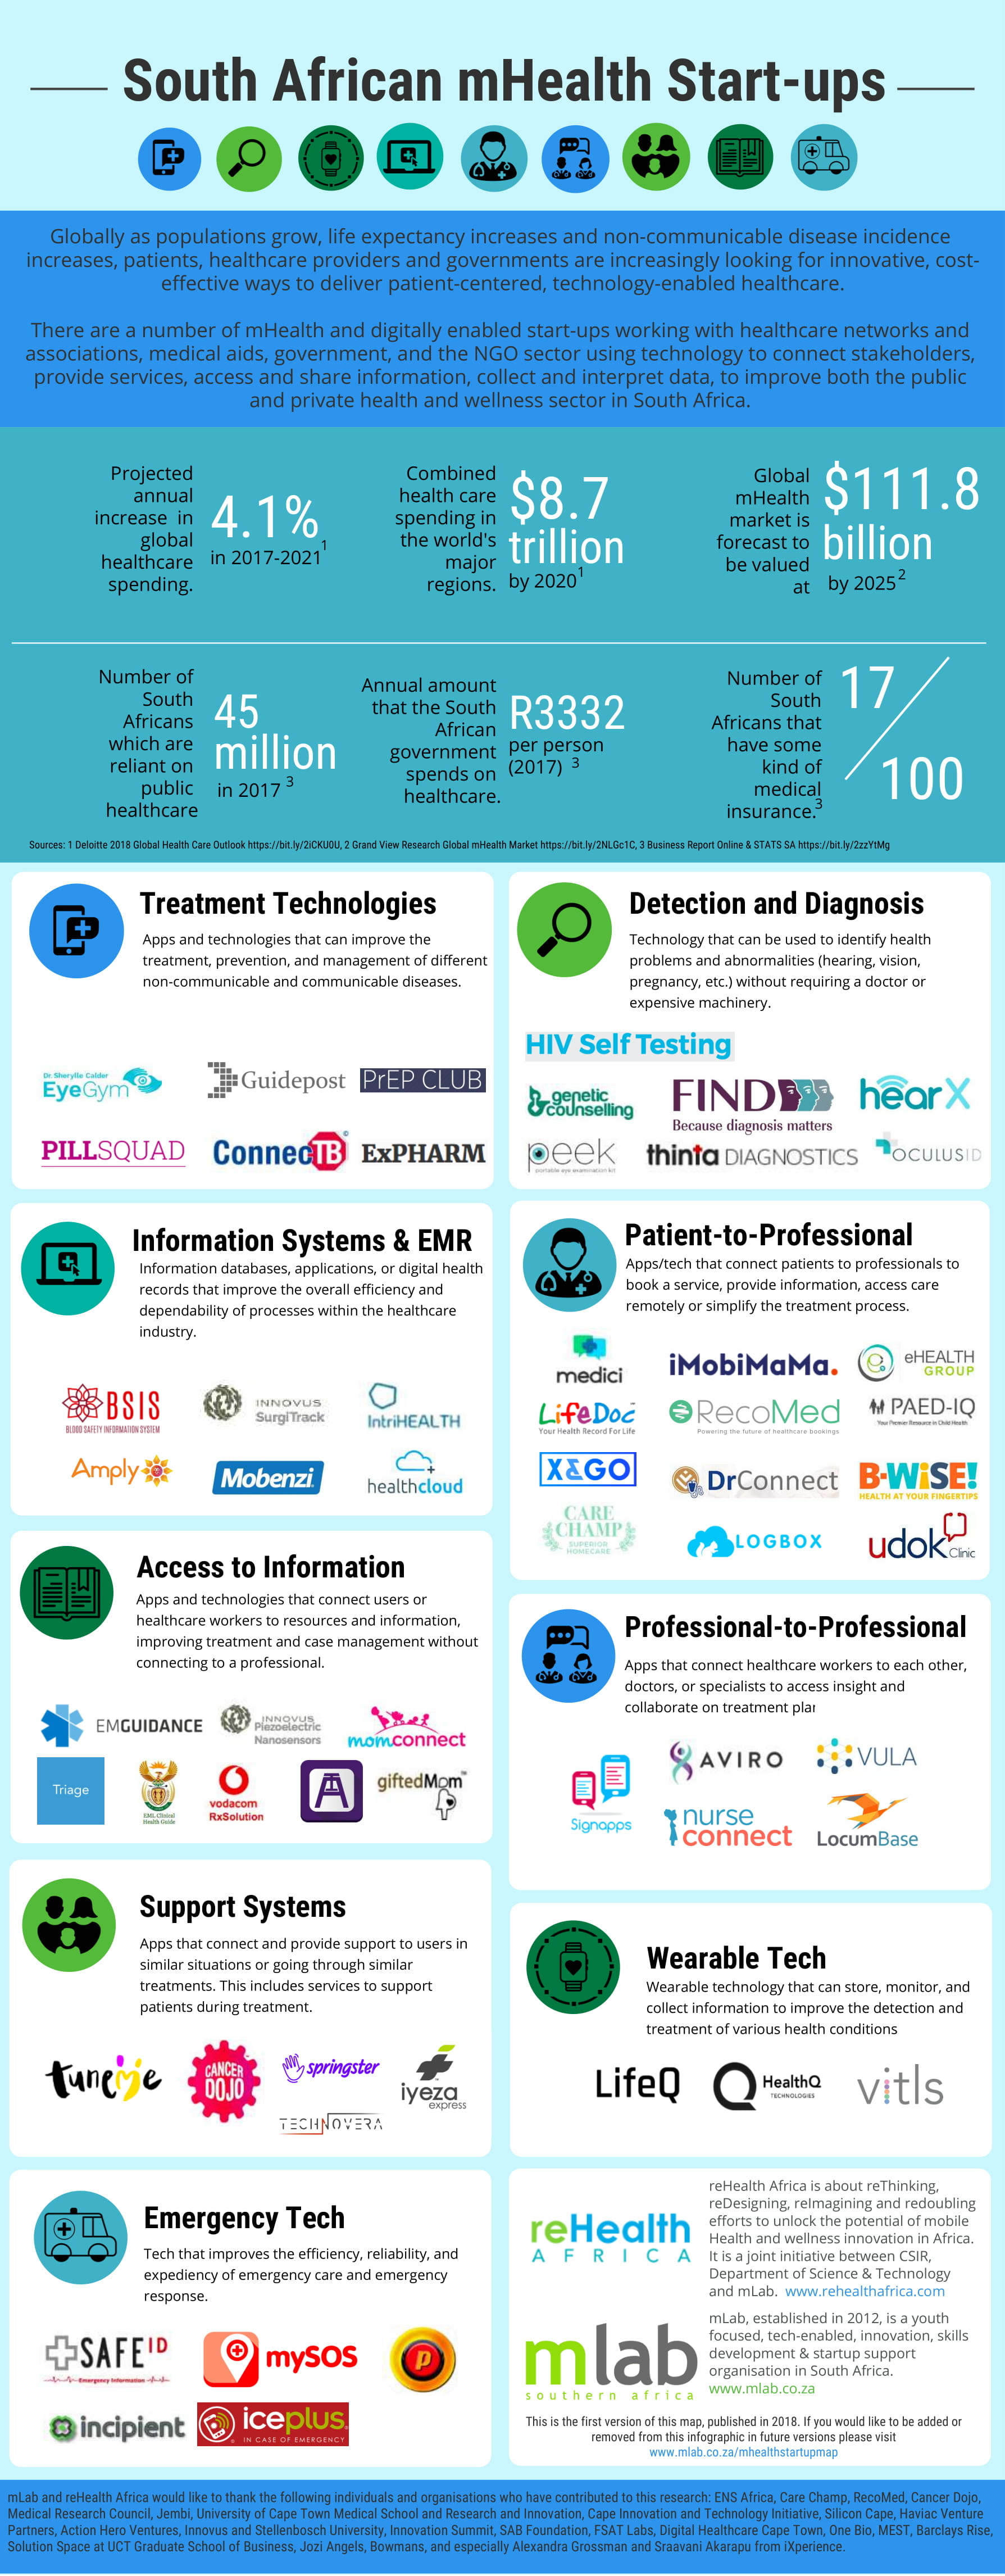 mhealth-startup-map-2018-1